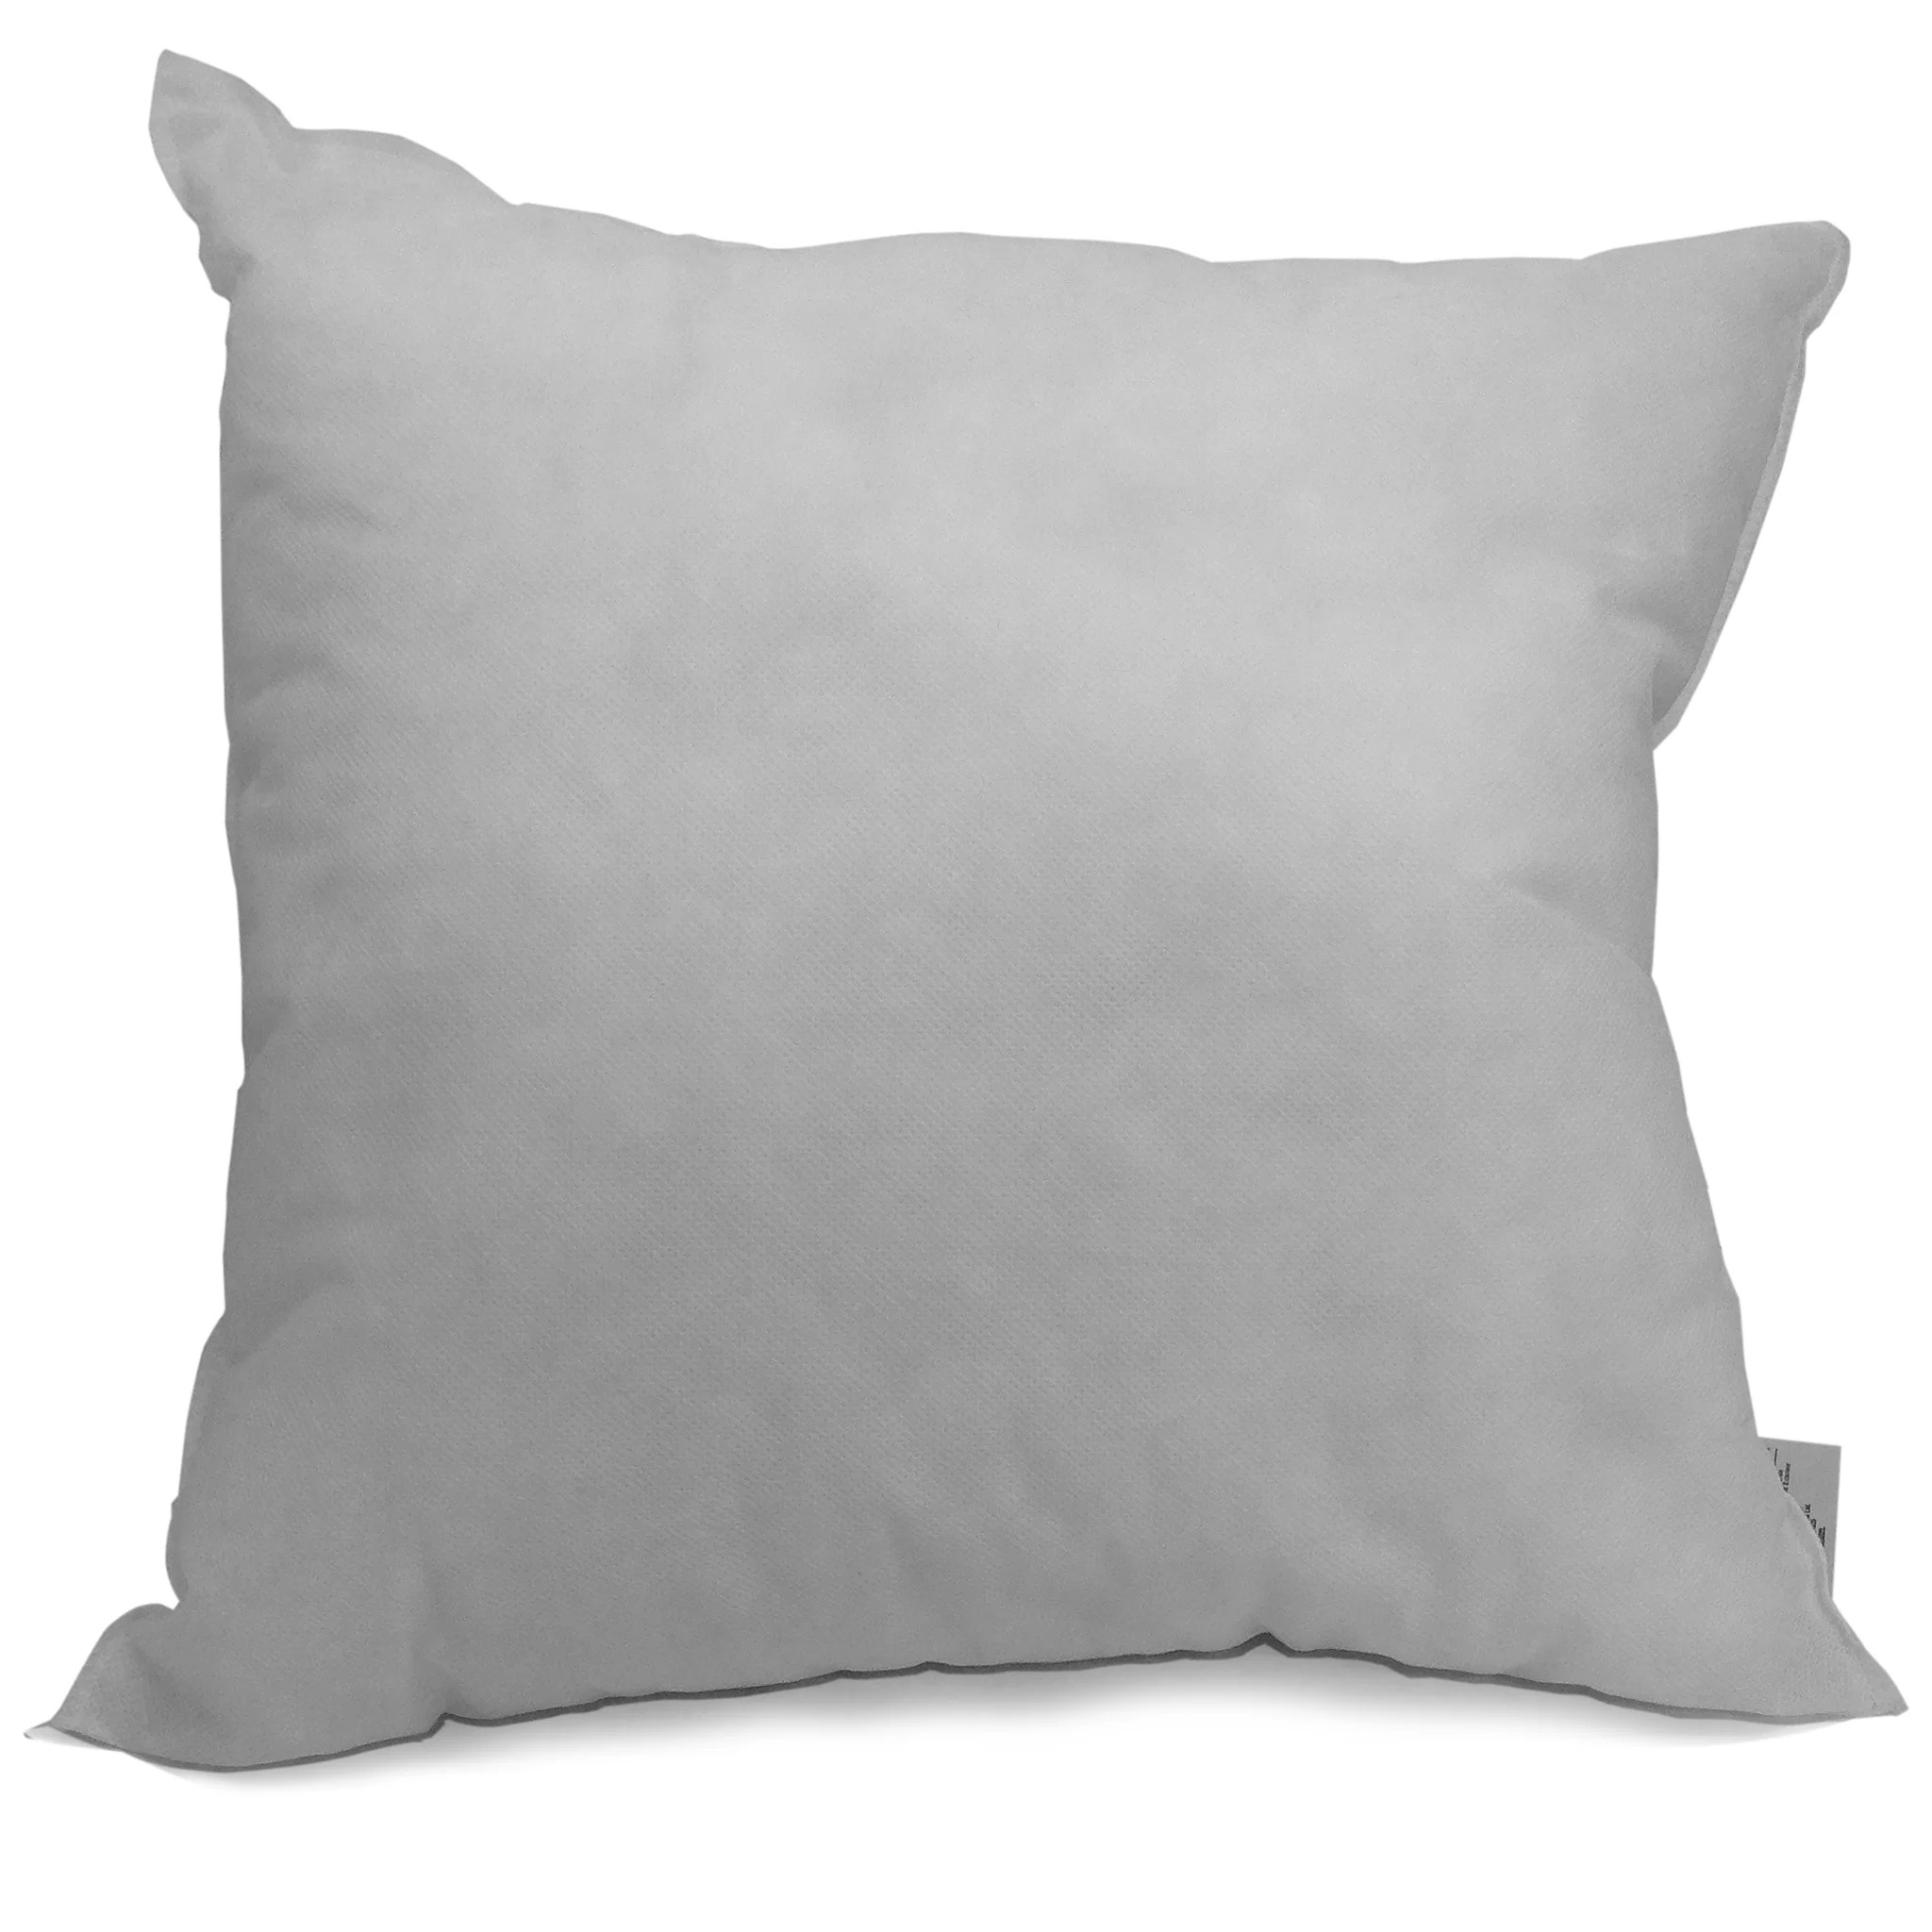 HomeTex Throw Pillow